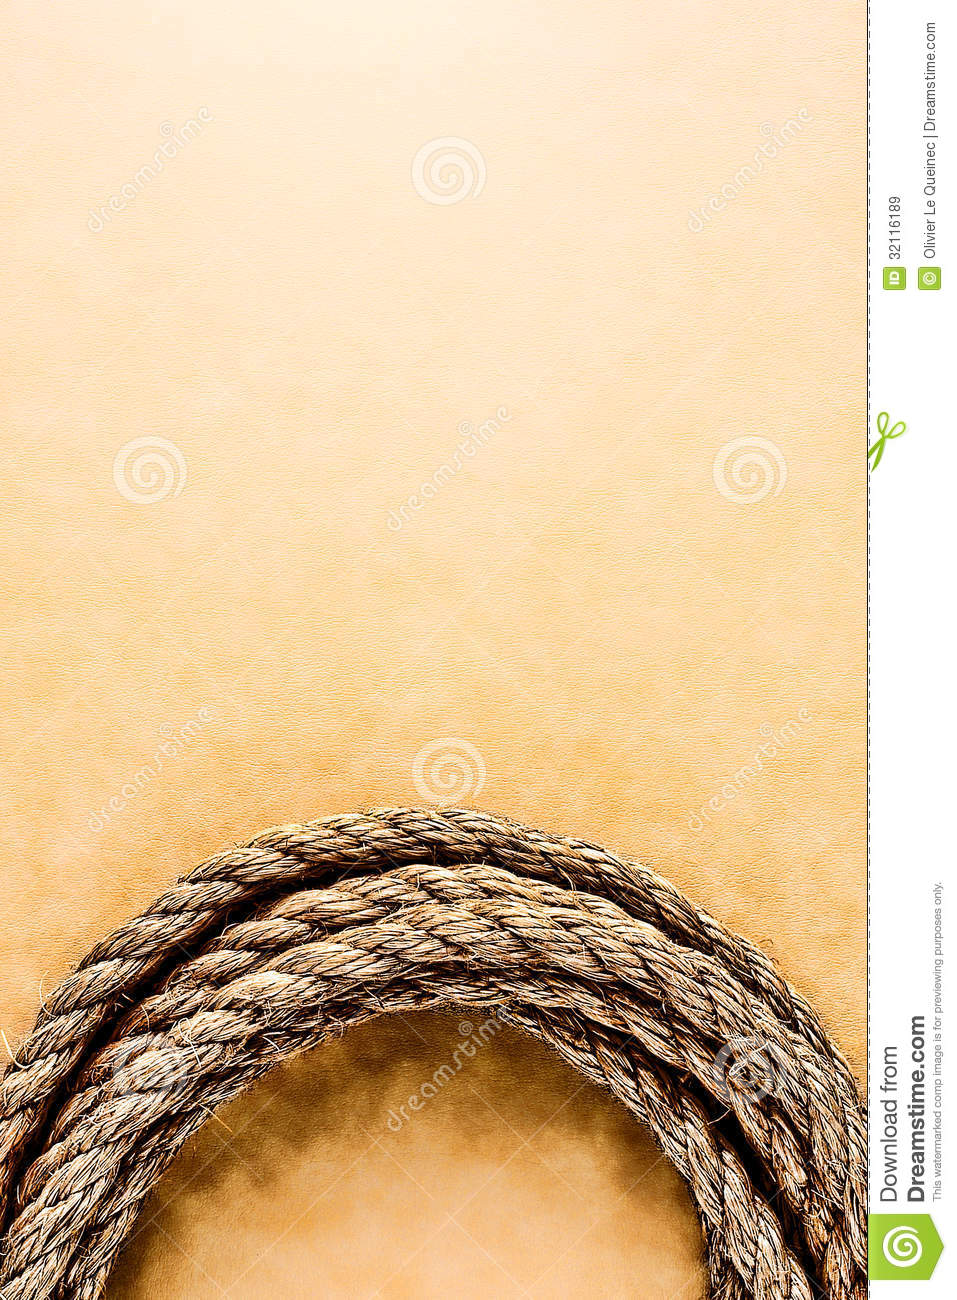 american west rodeo ranching lasso rope background stock image